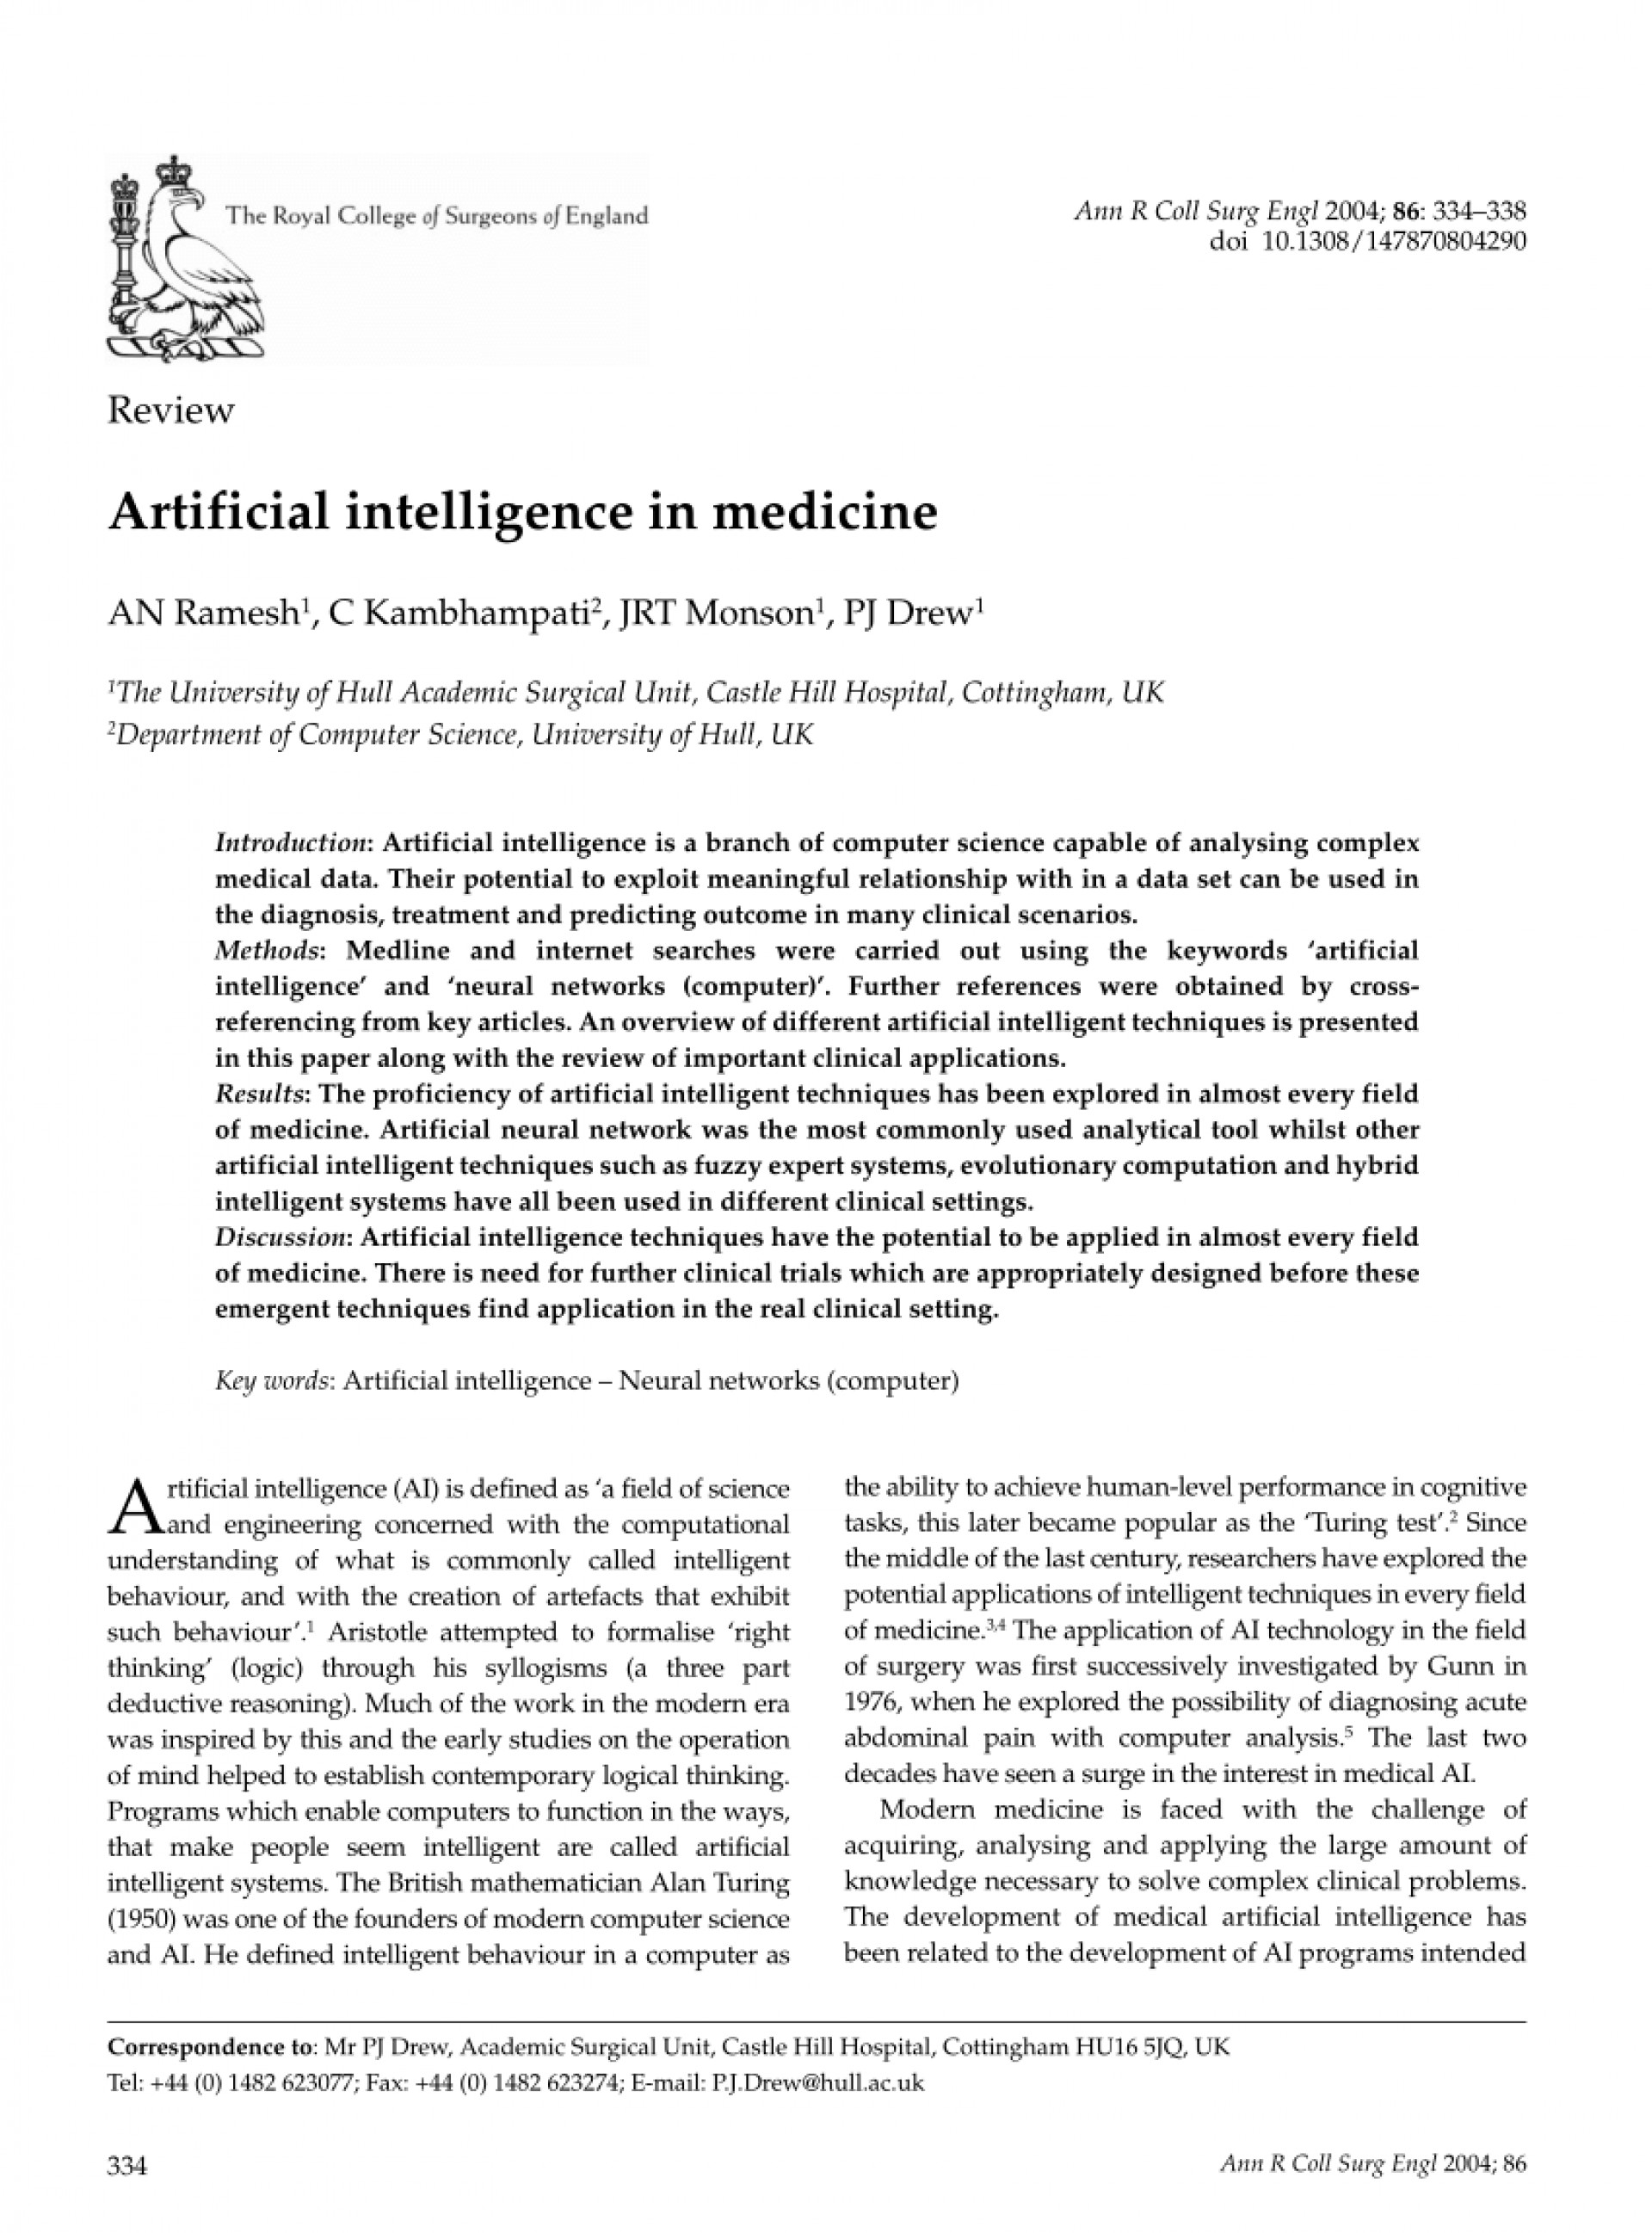 004 Largepreview Research Paper Latest On Artificial Intelligence Surprising Pdf 2017 1920